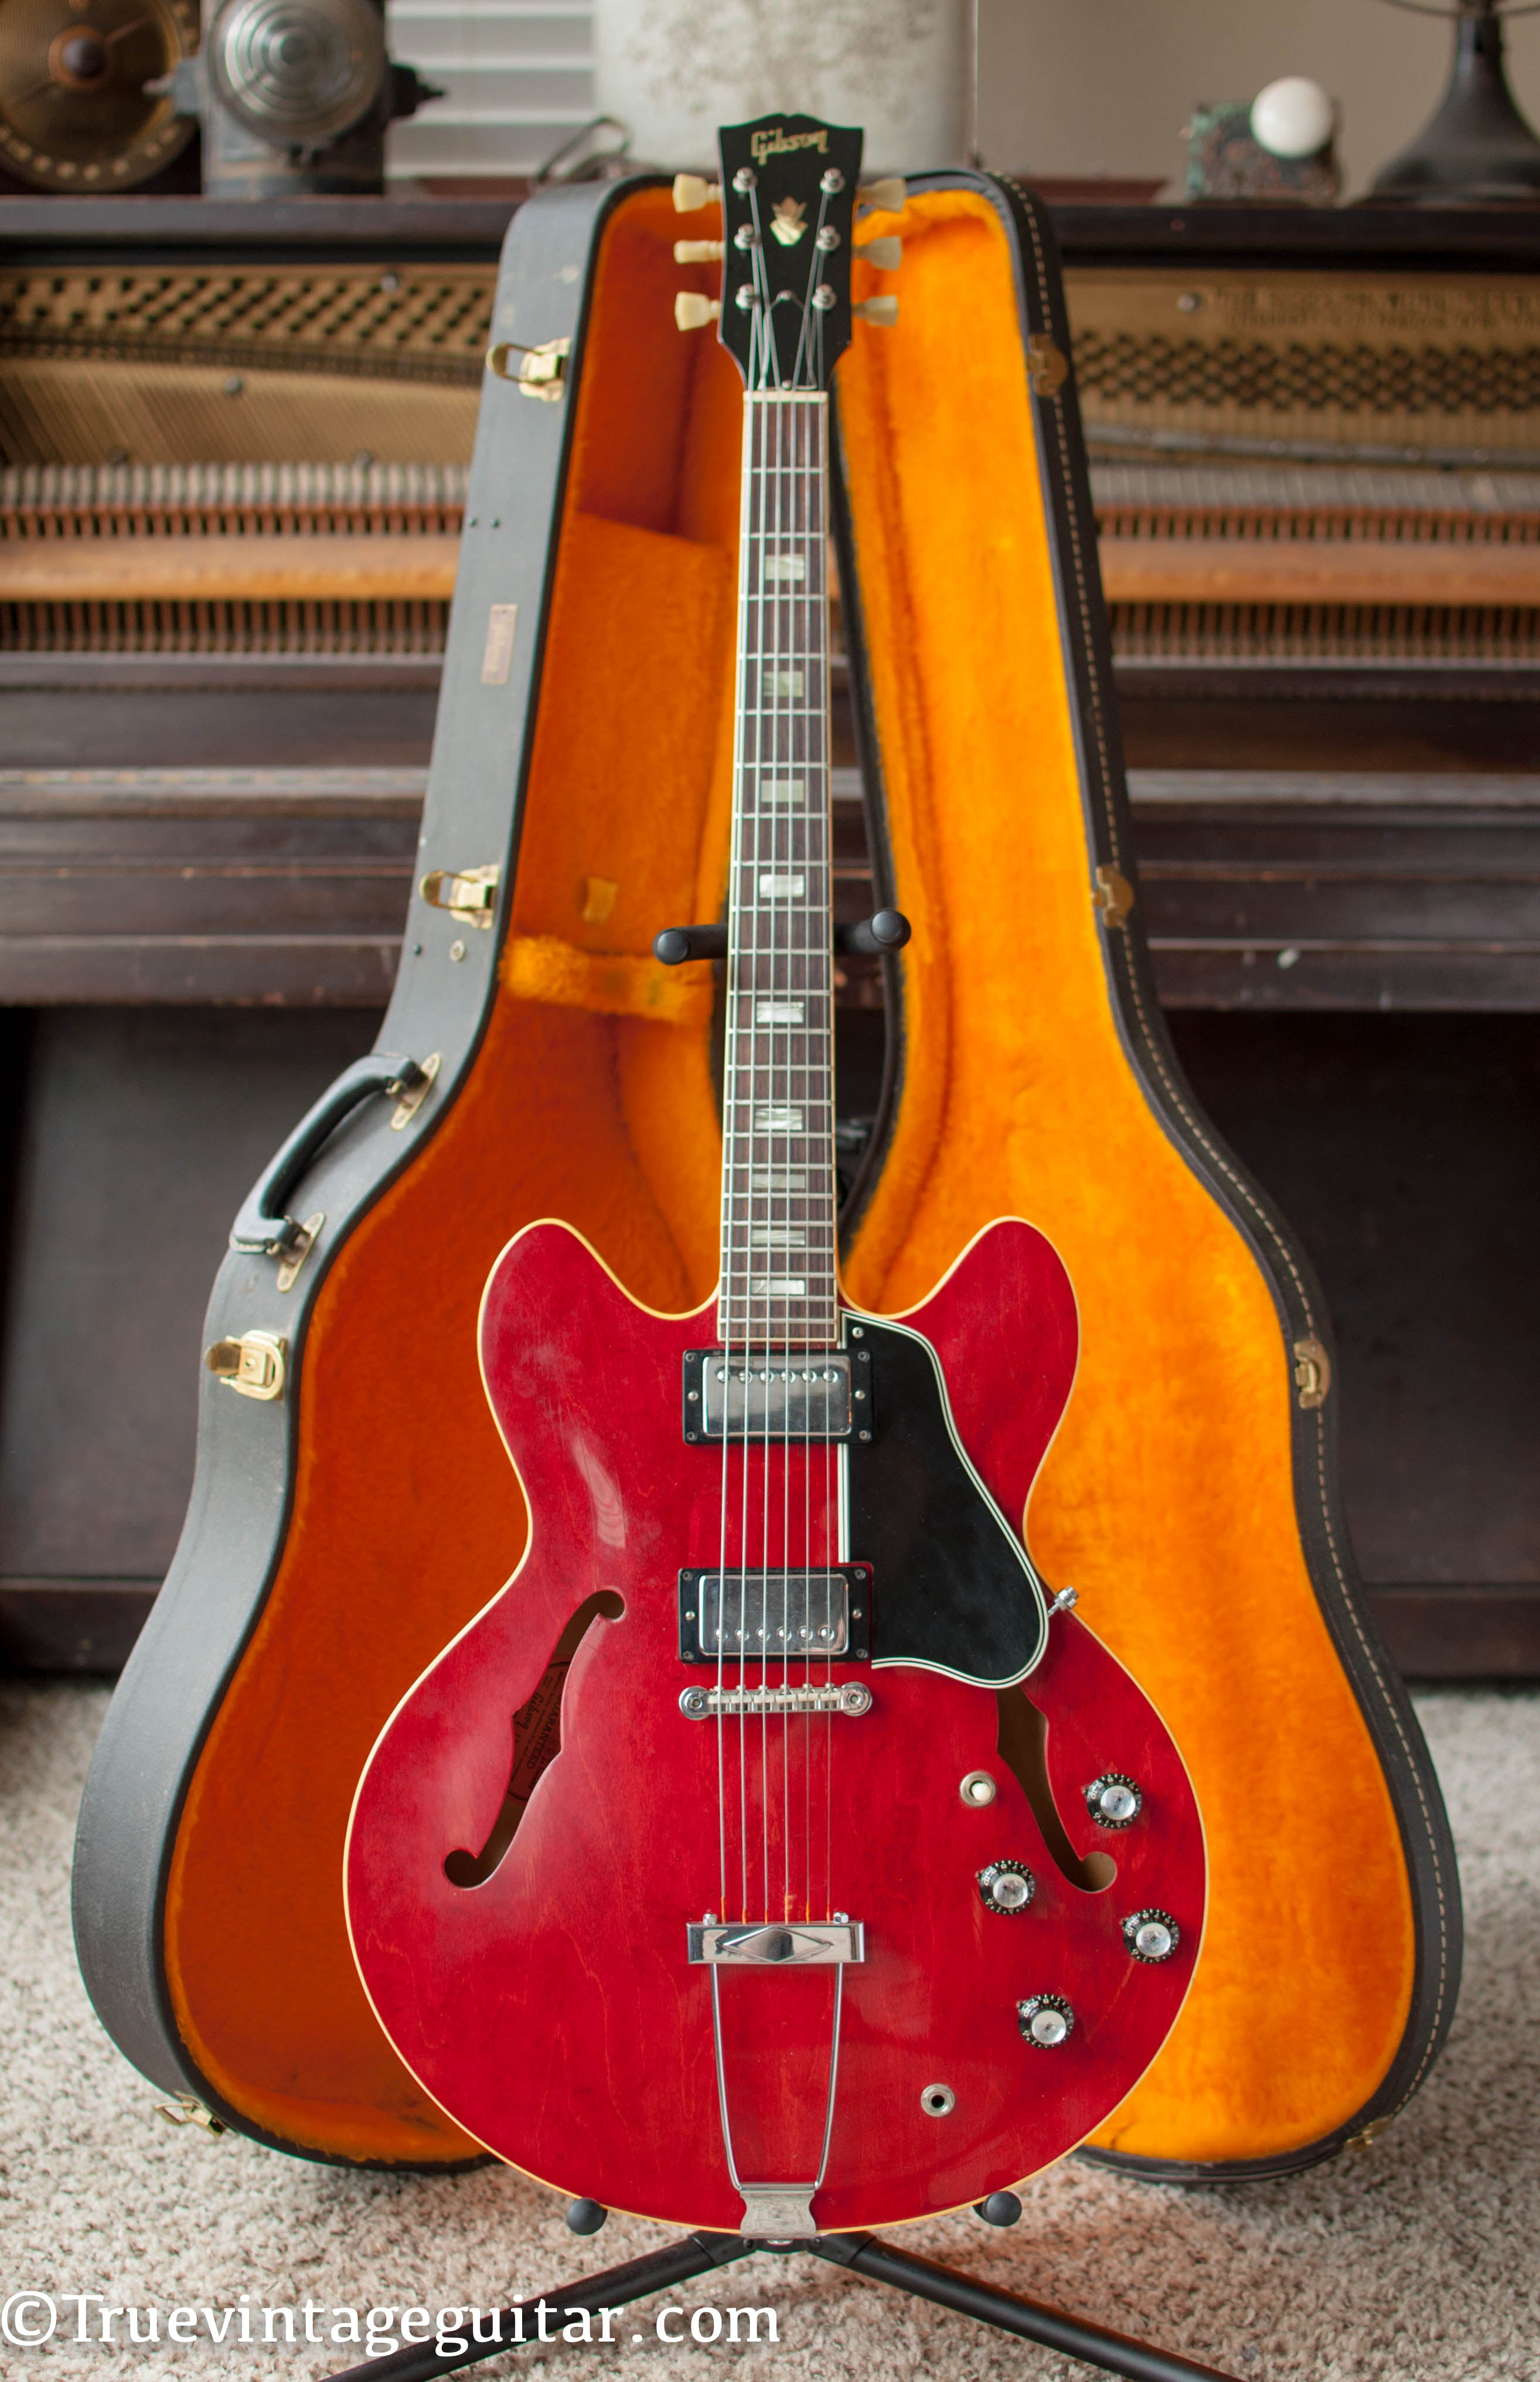 Vintage 1966 Gibson ES-335 tdc electric guitar